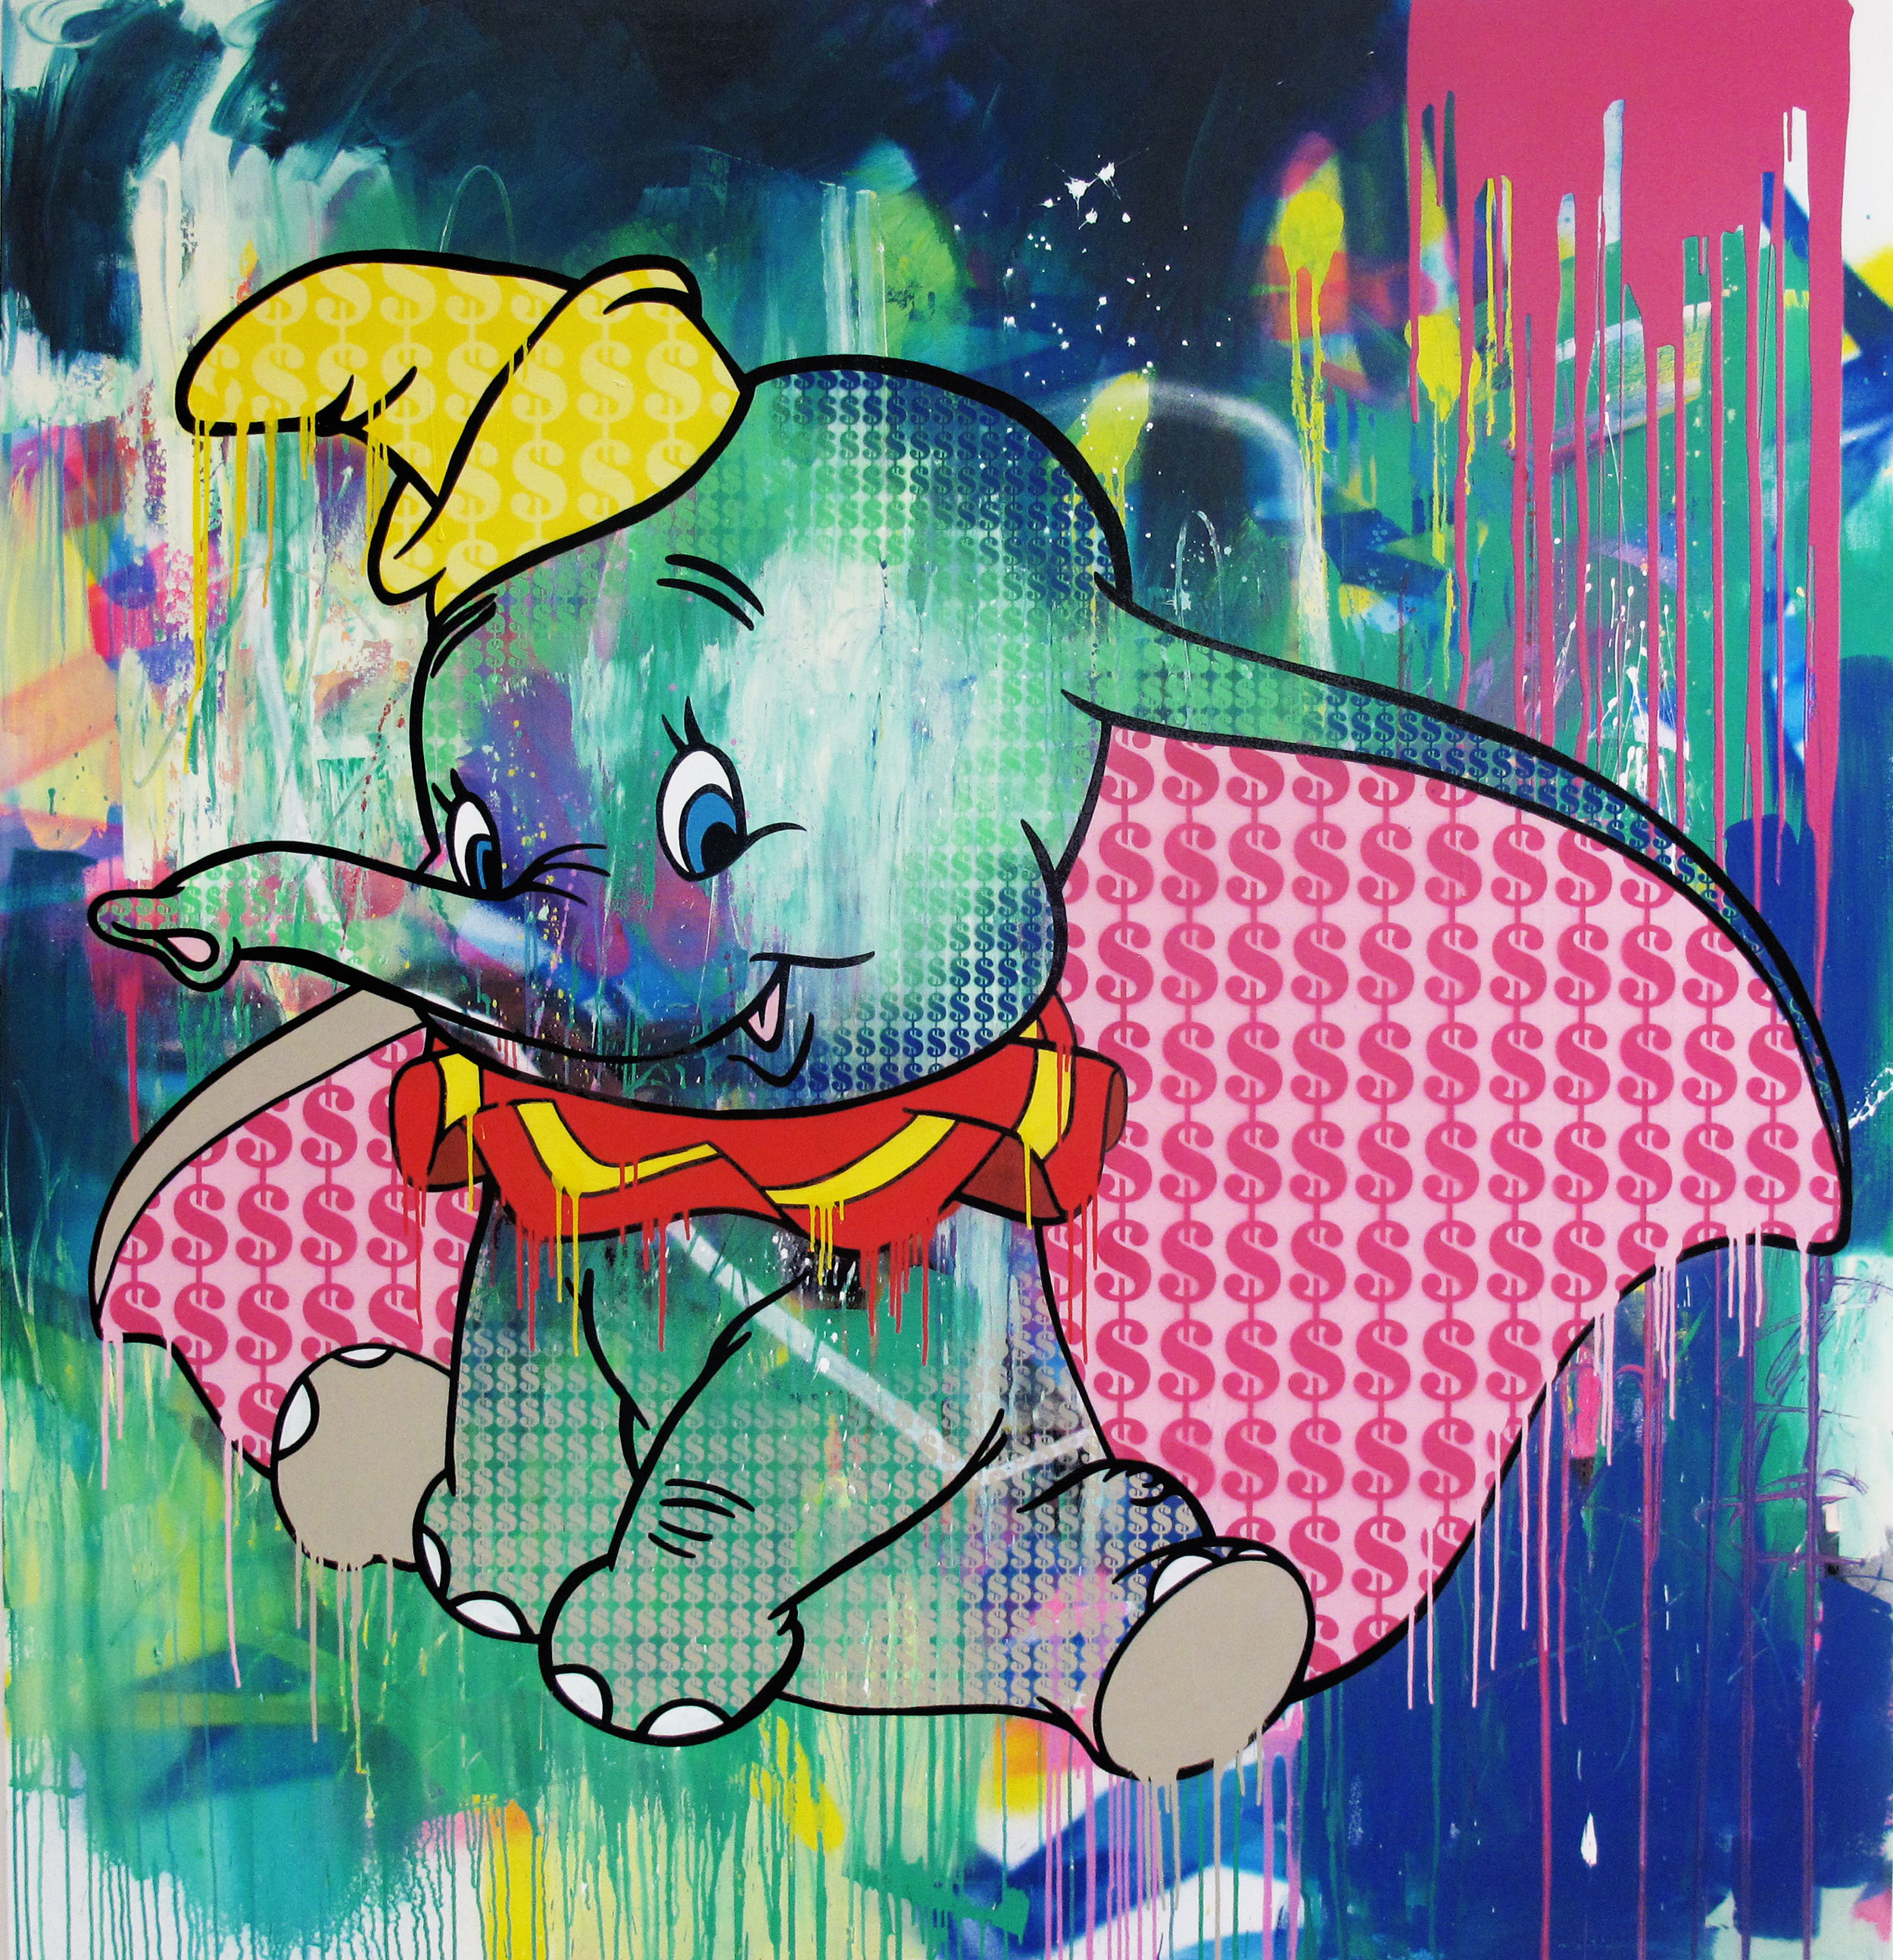 Dumbo-Dollars-acrylic-spray-paint-varnish-on-canvas-190-x-200-x-4.5-cm-£6450.jpg